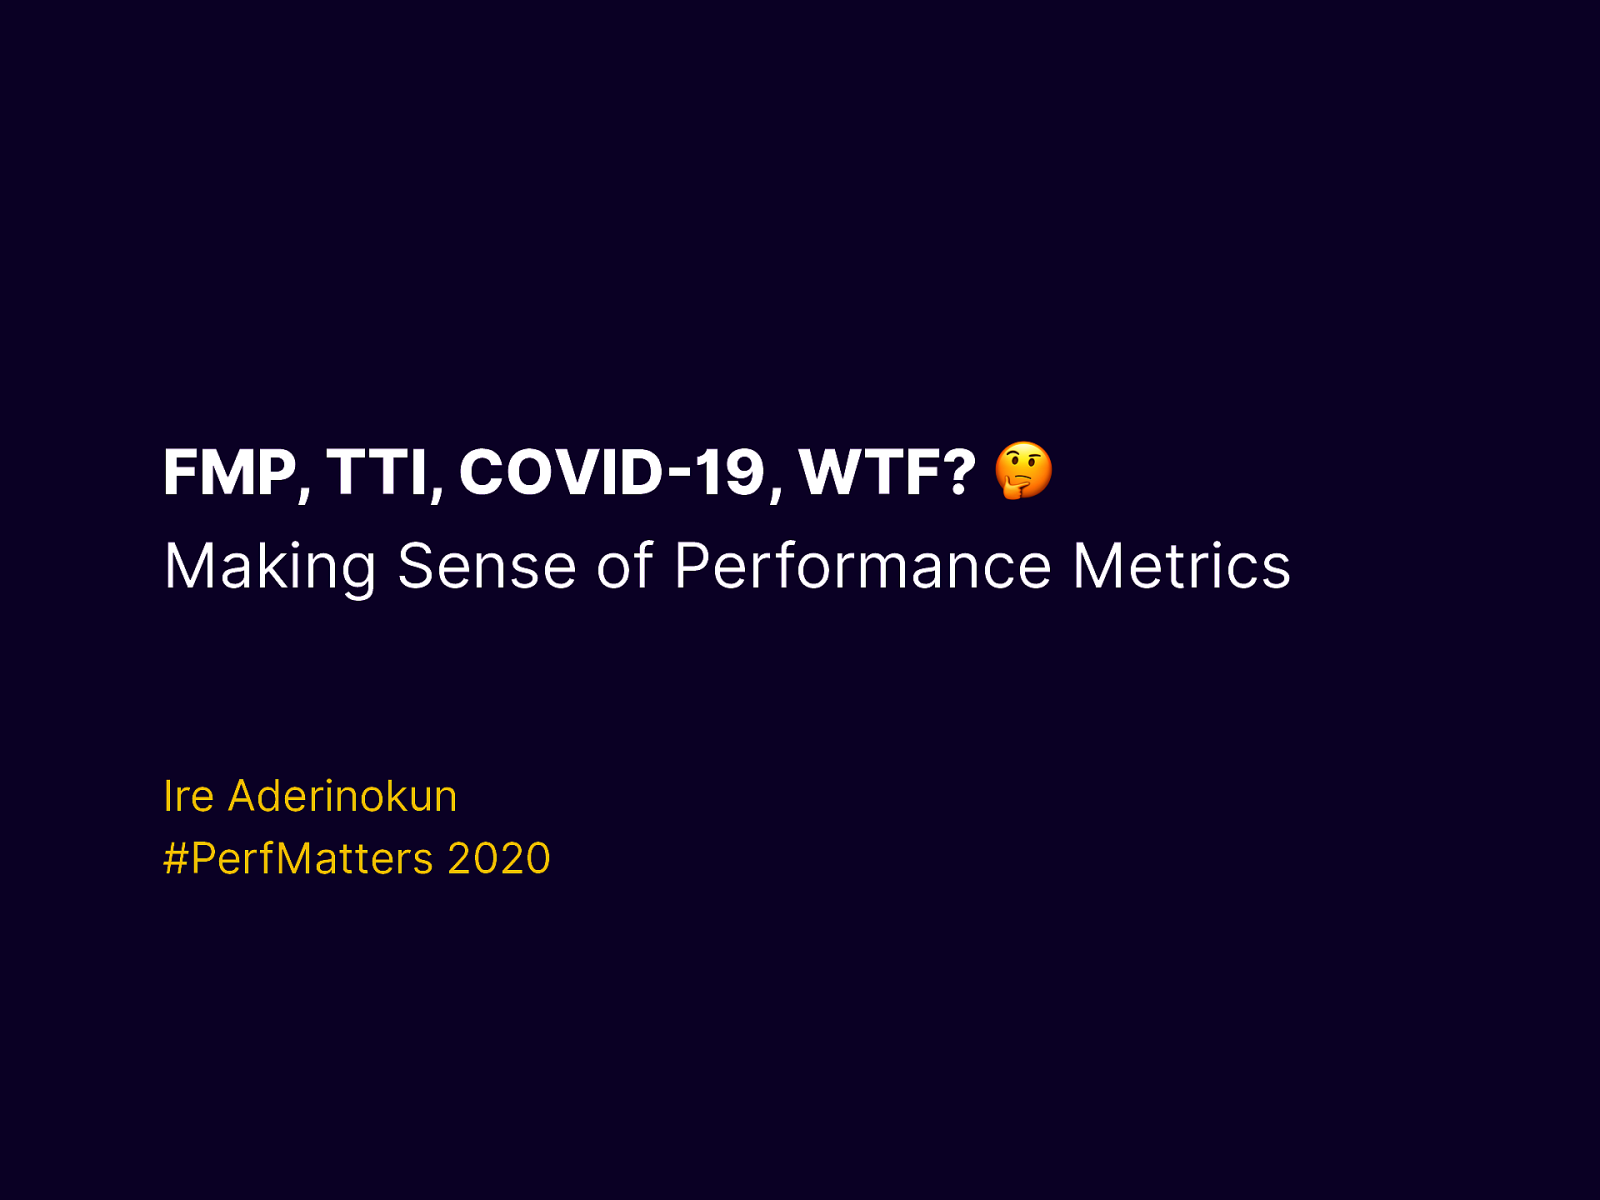 FMP, TTI, WTF? Making Sense of Web Performance